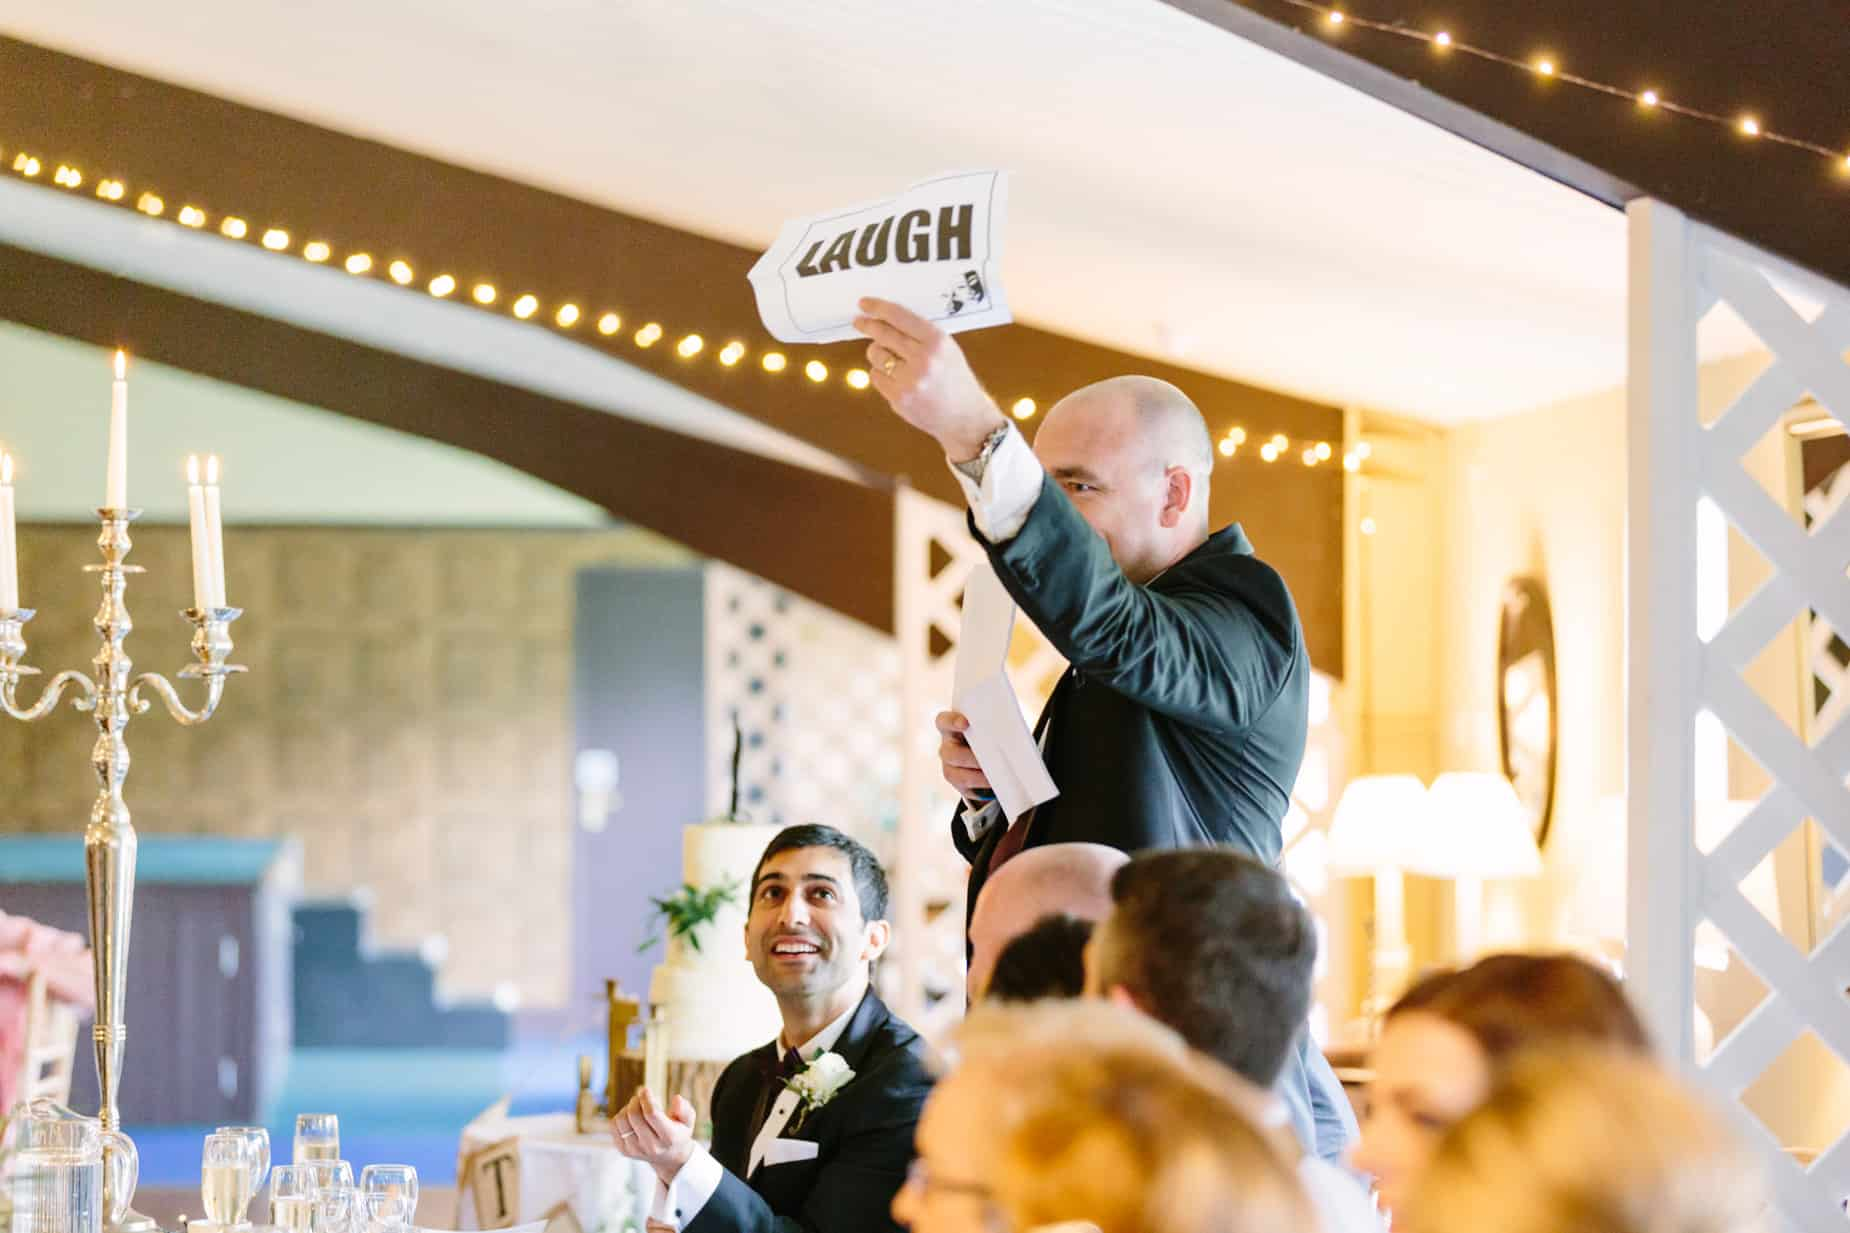 best man giving his wedding speech and holding up a sheet of paper asking guests to laugh